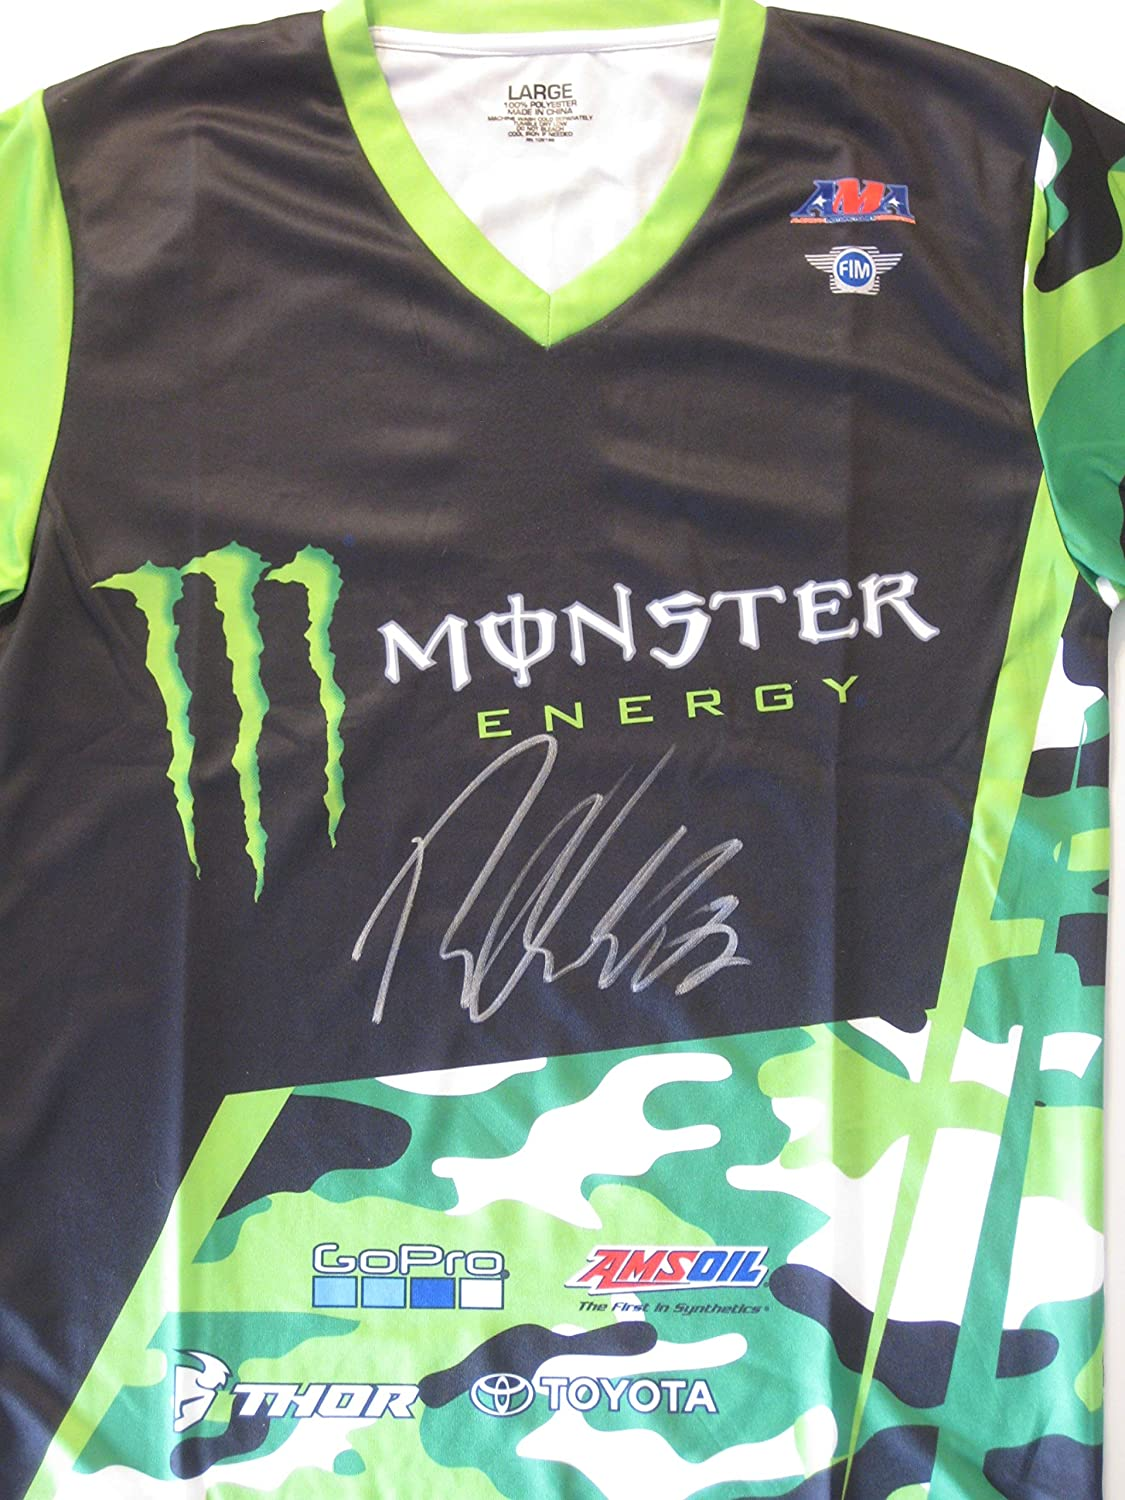 Ryan Villopoto Supercross Motocross signed autographed Monster Energy Jersey b80348857